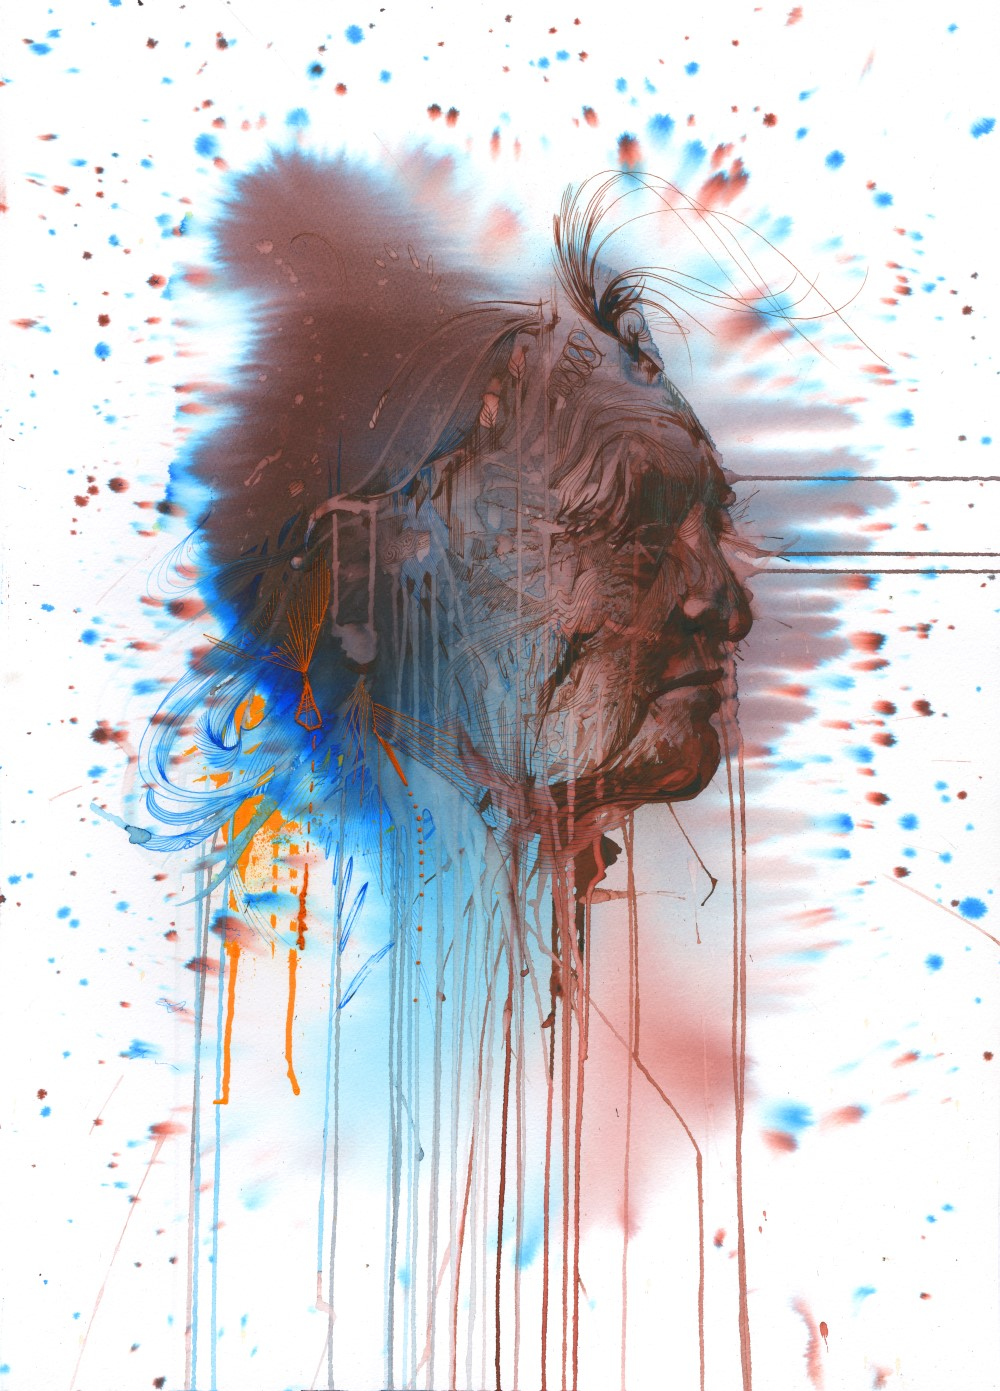 Scales by Carne Griffiths